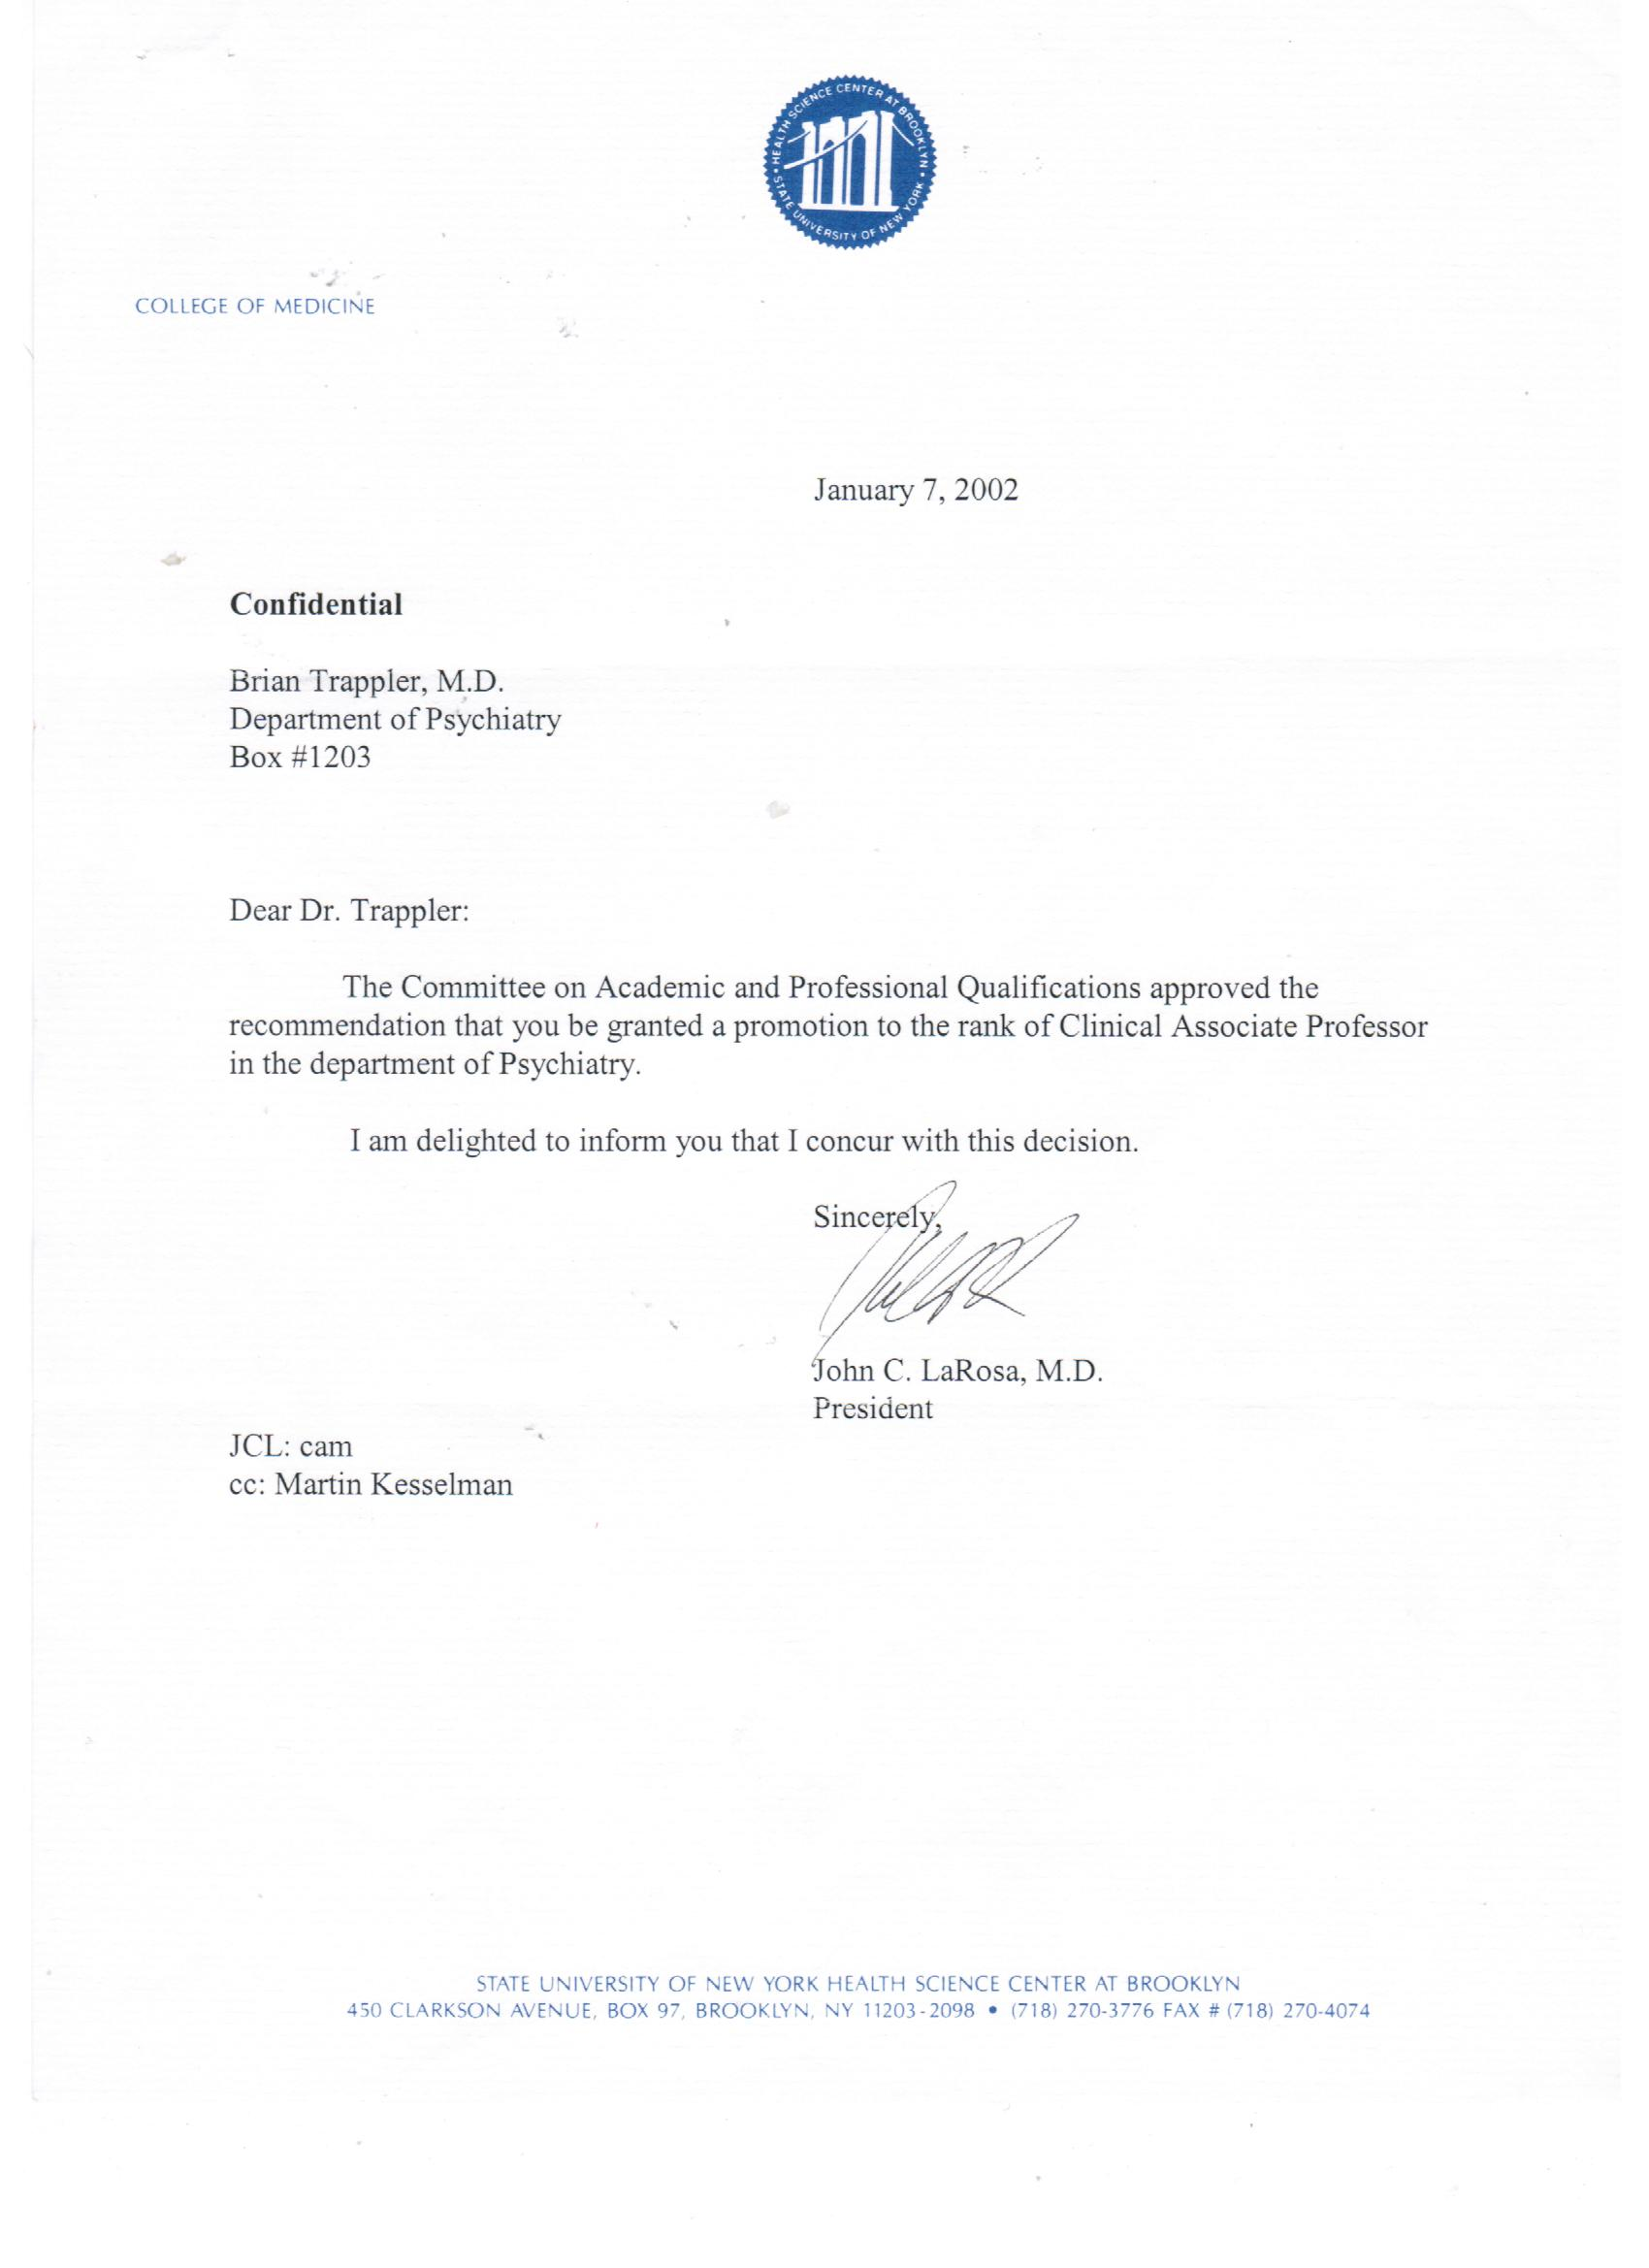 Letters Of Endorsement  Briantrappler MD  General Psychiatry